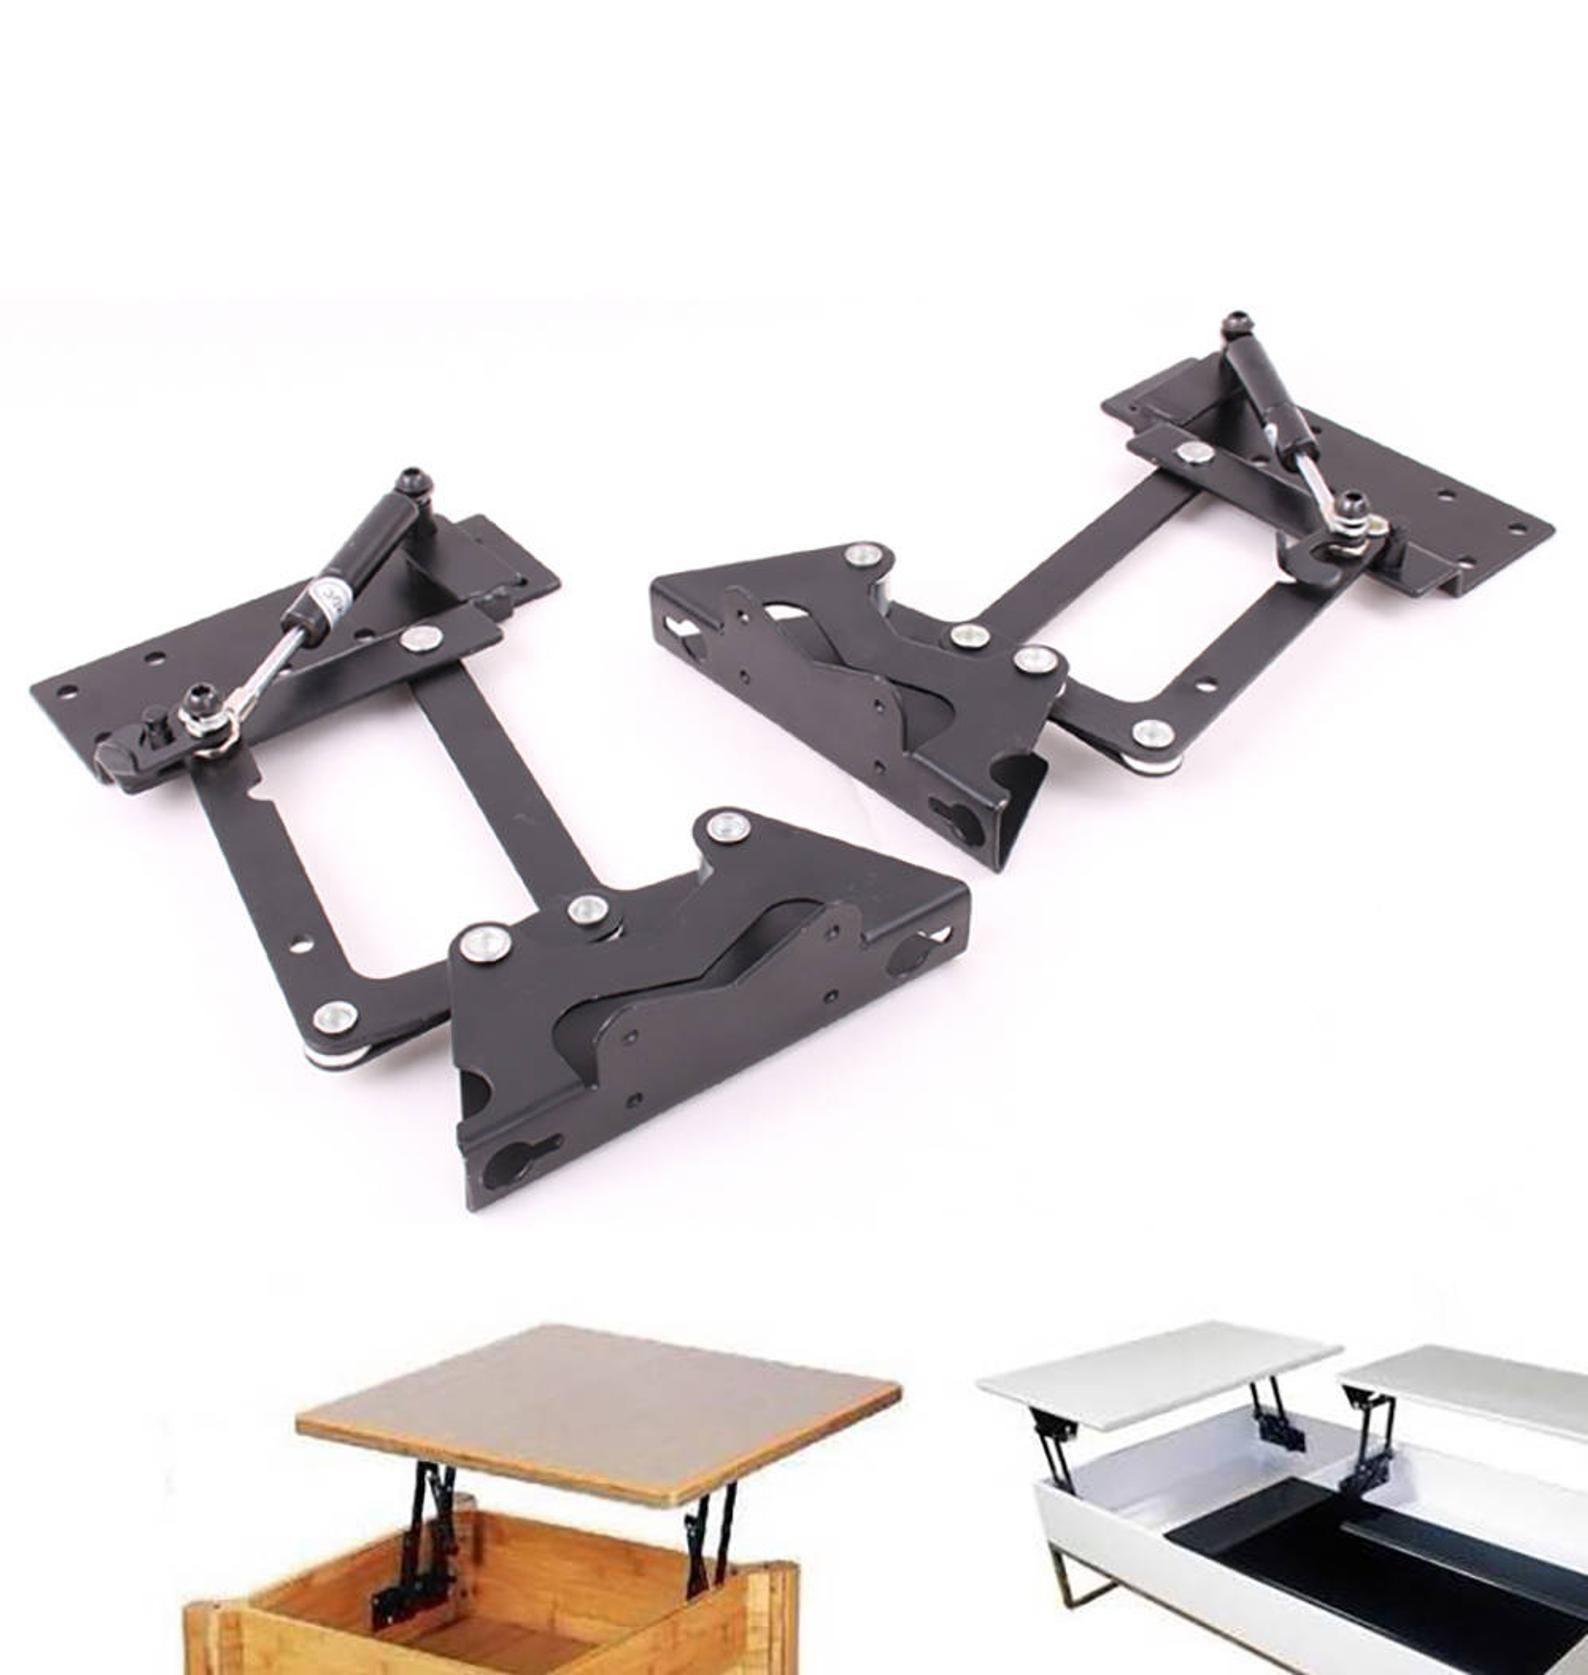 Lift Up Modern Coffee Table Mechanism Hardware Fitting Etsy In 2021 Diy Coffee Table Furniture Hinges Lift Up Coffee Table [ 1675 x 1588 Pixel ]